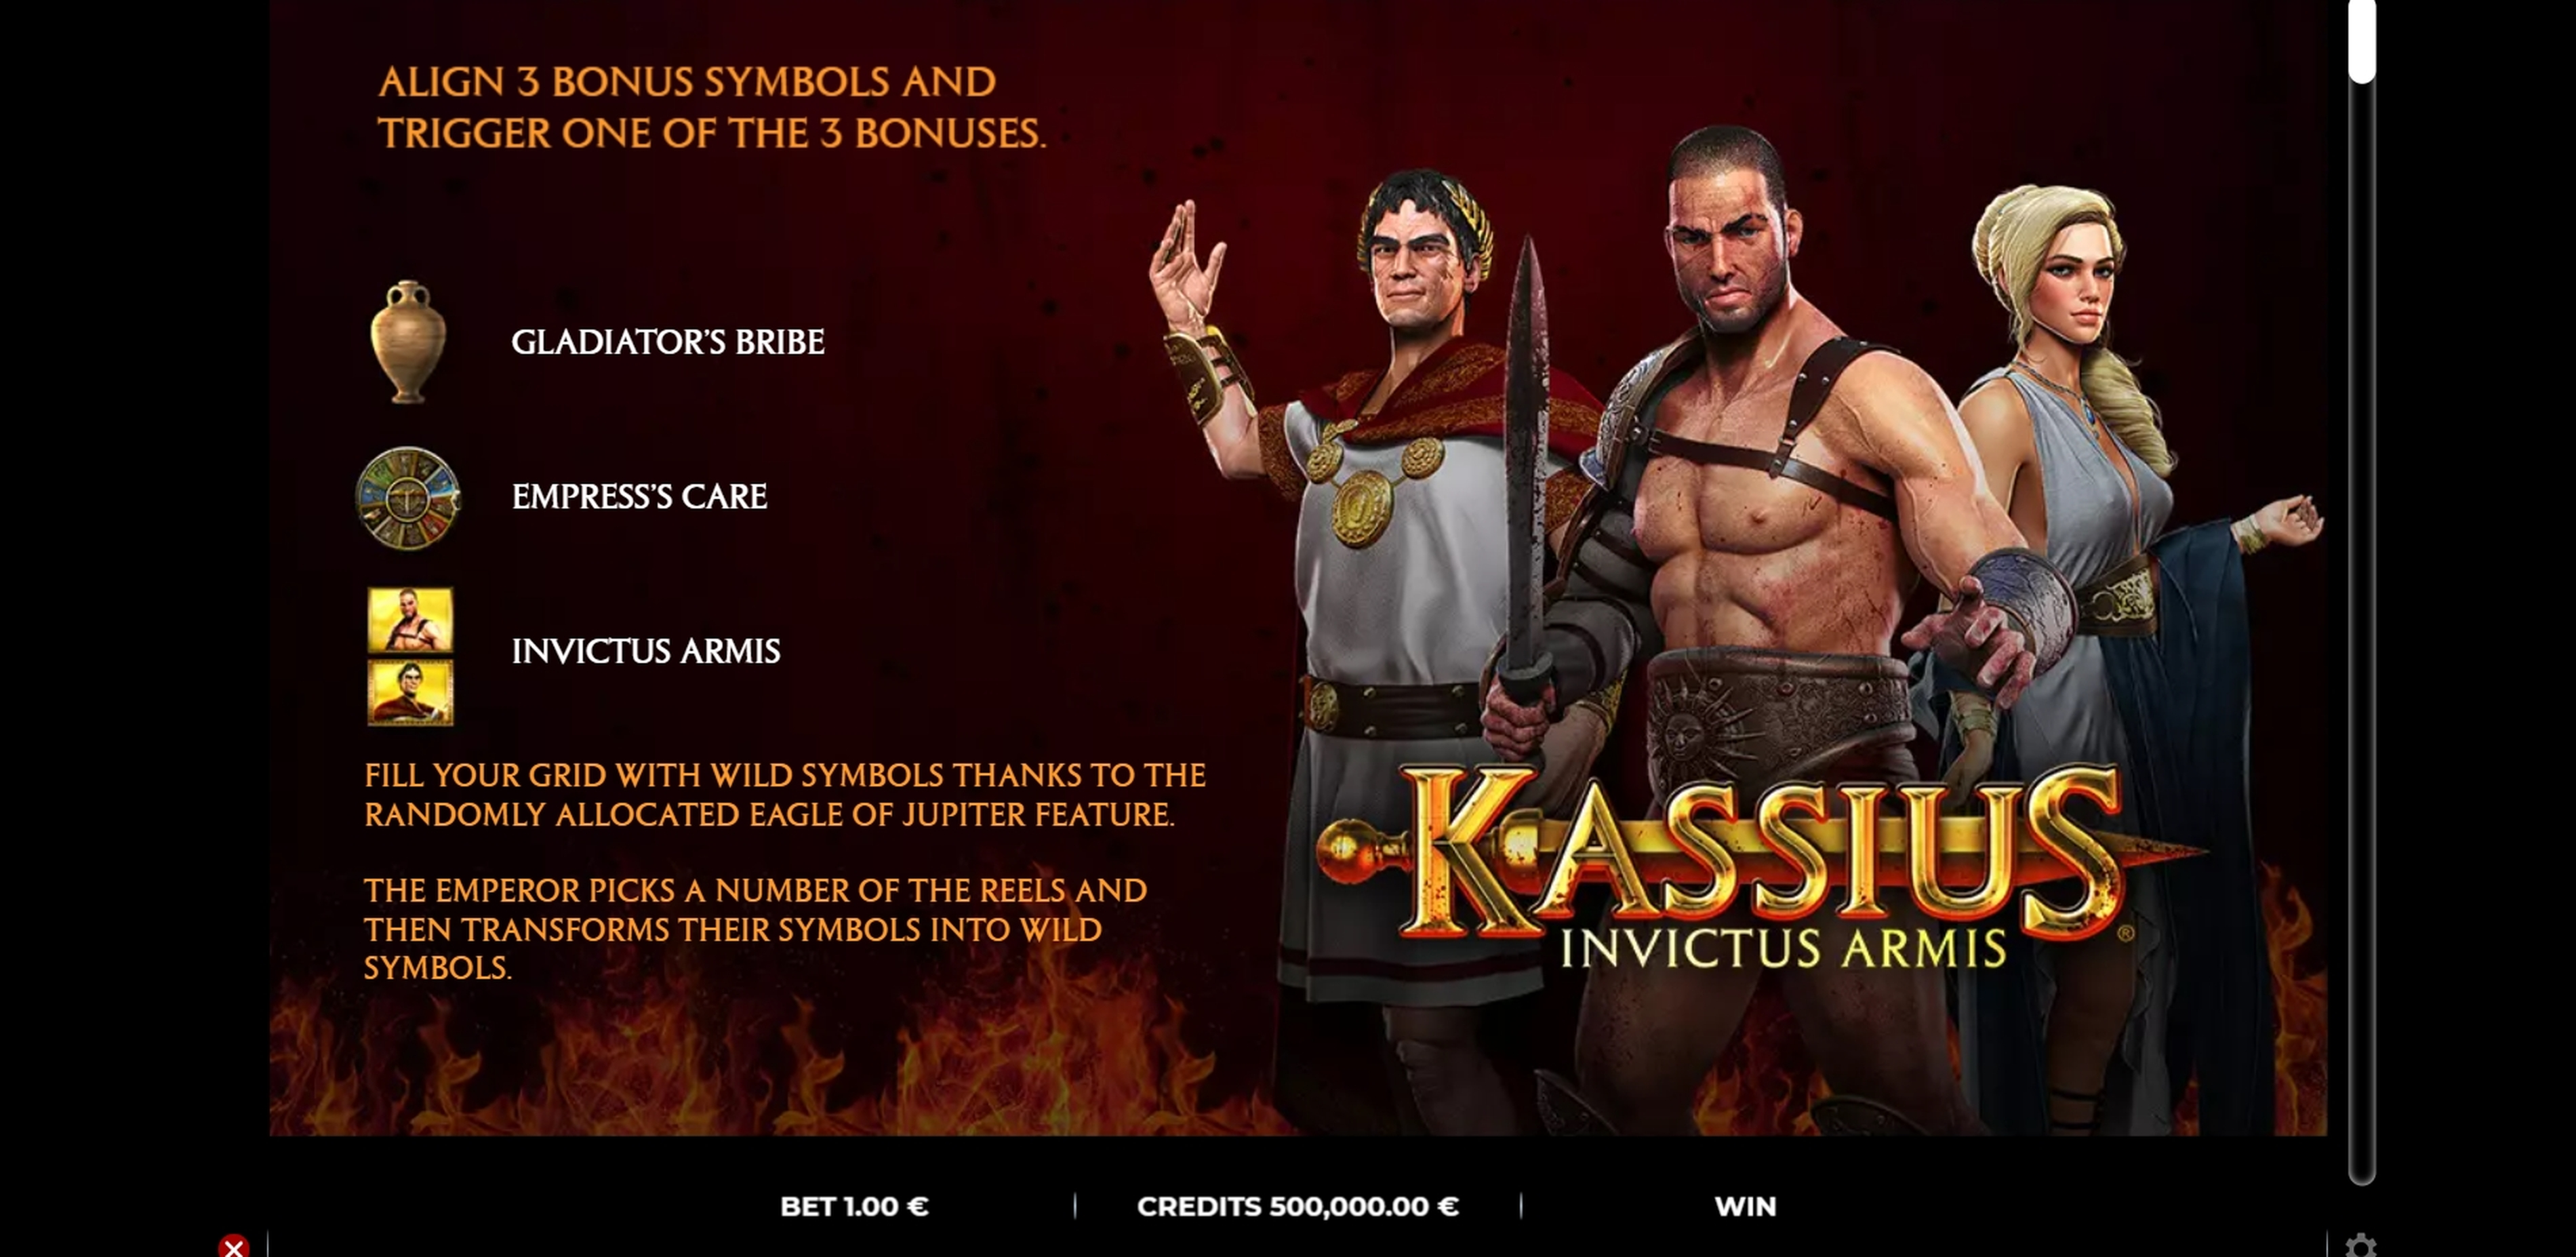 Info of Kassius Invictus Armis Slot Game by GAMING1